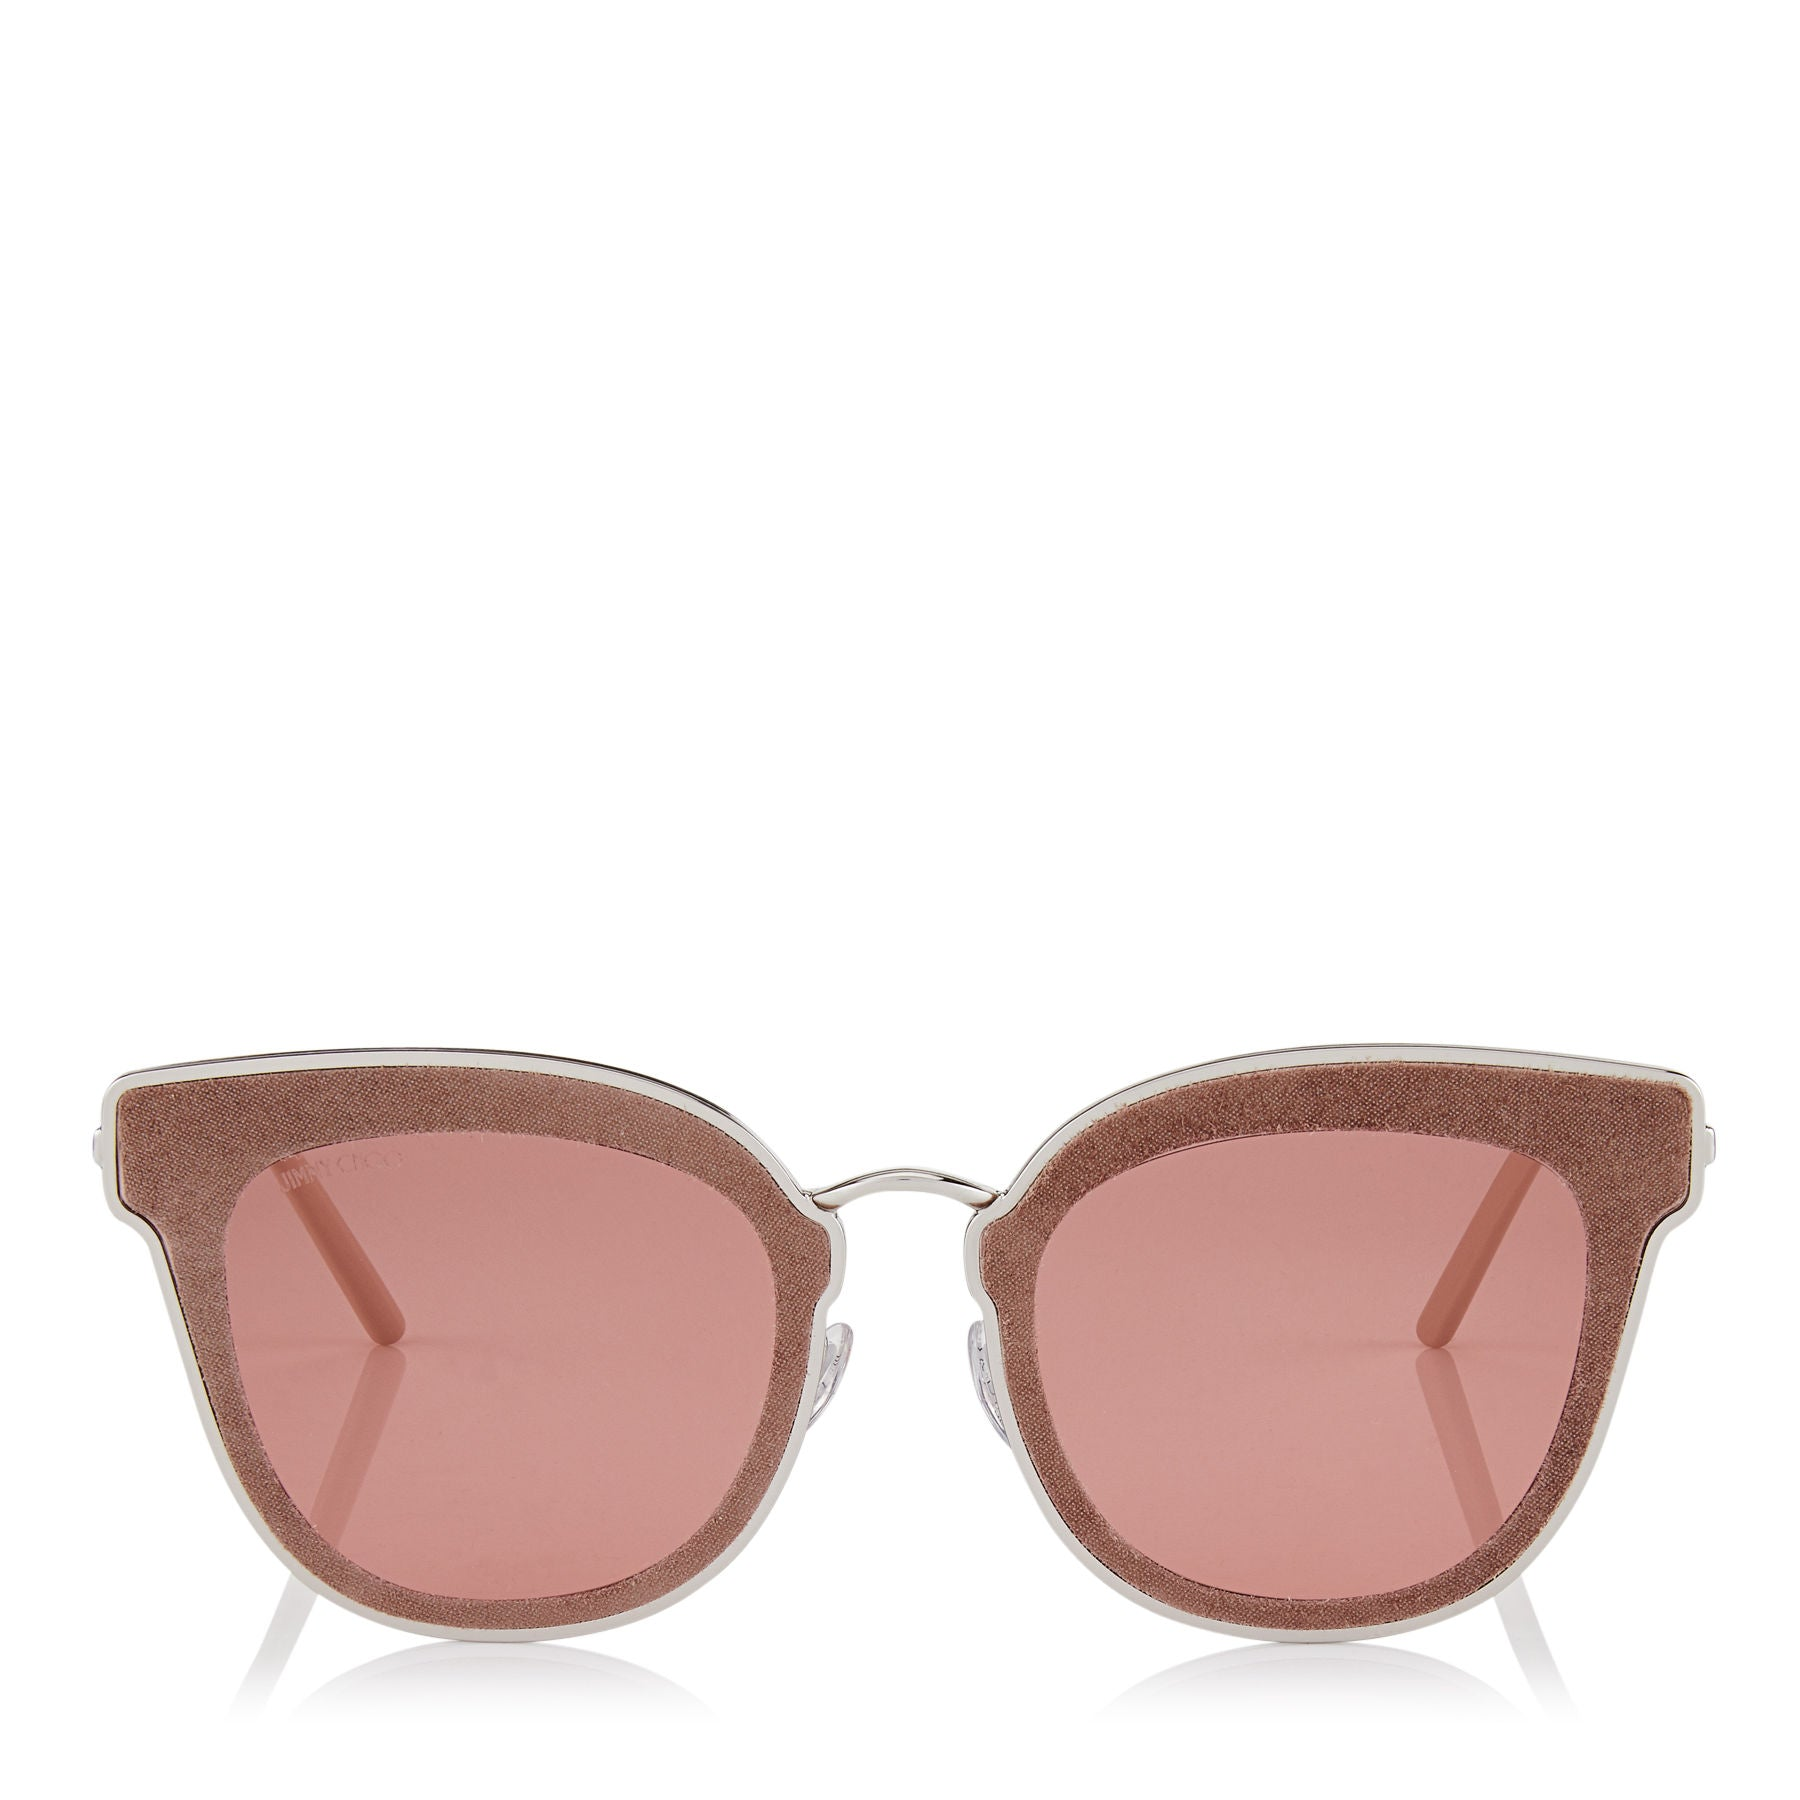 JIMMY CHOO Nile Palladium Metal Cat-Eye Sunglasses with Nude Leather Detailing ITEM NO. NILES63ES0J